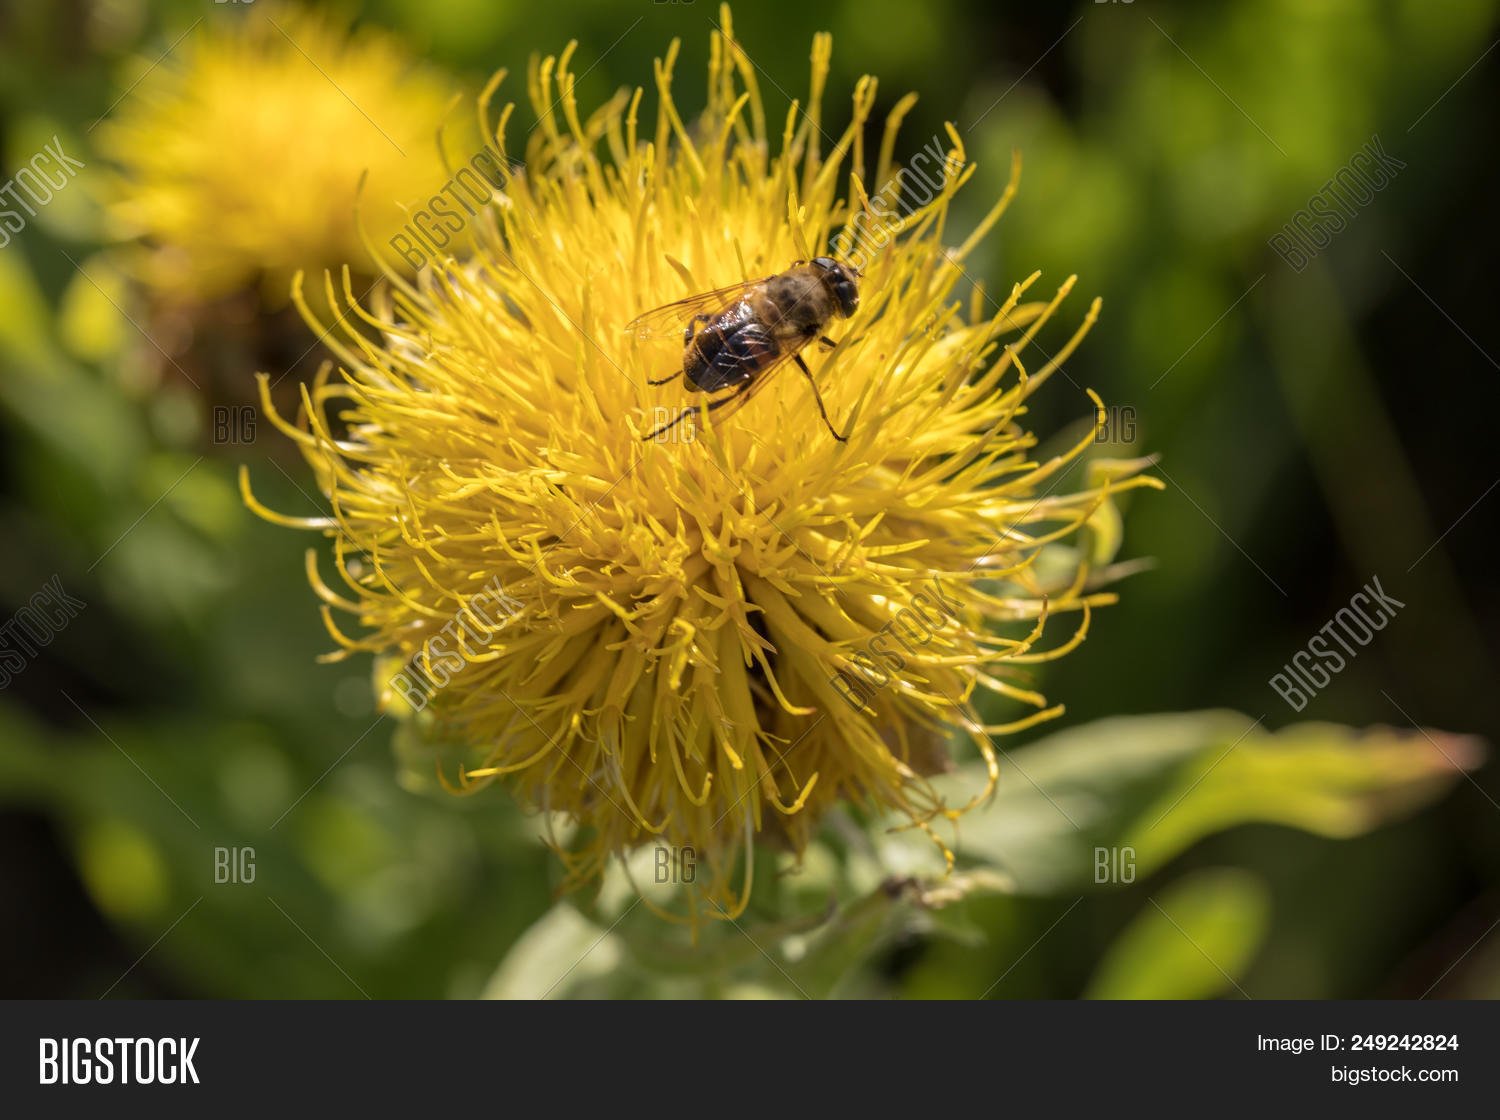 Blooming Yellow Star Thistle Flowers In A Garden Photo Stock